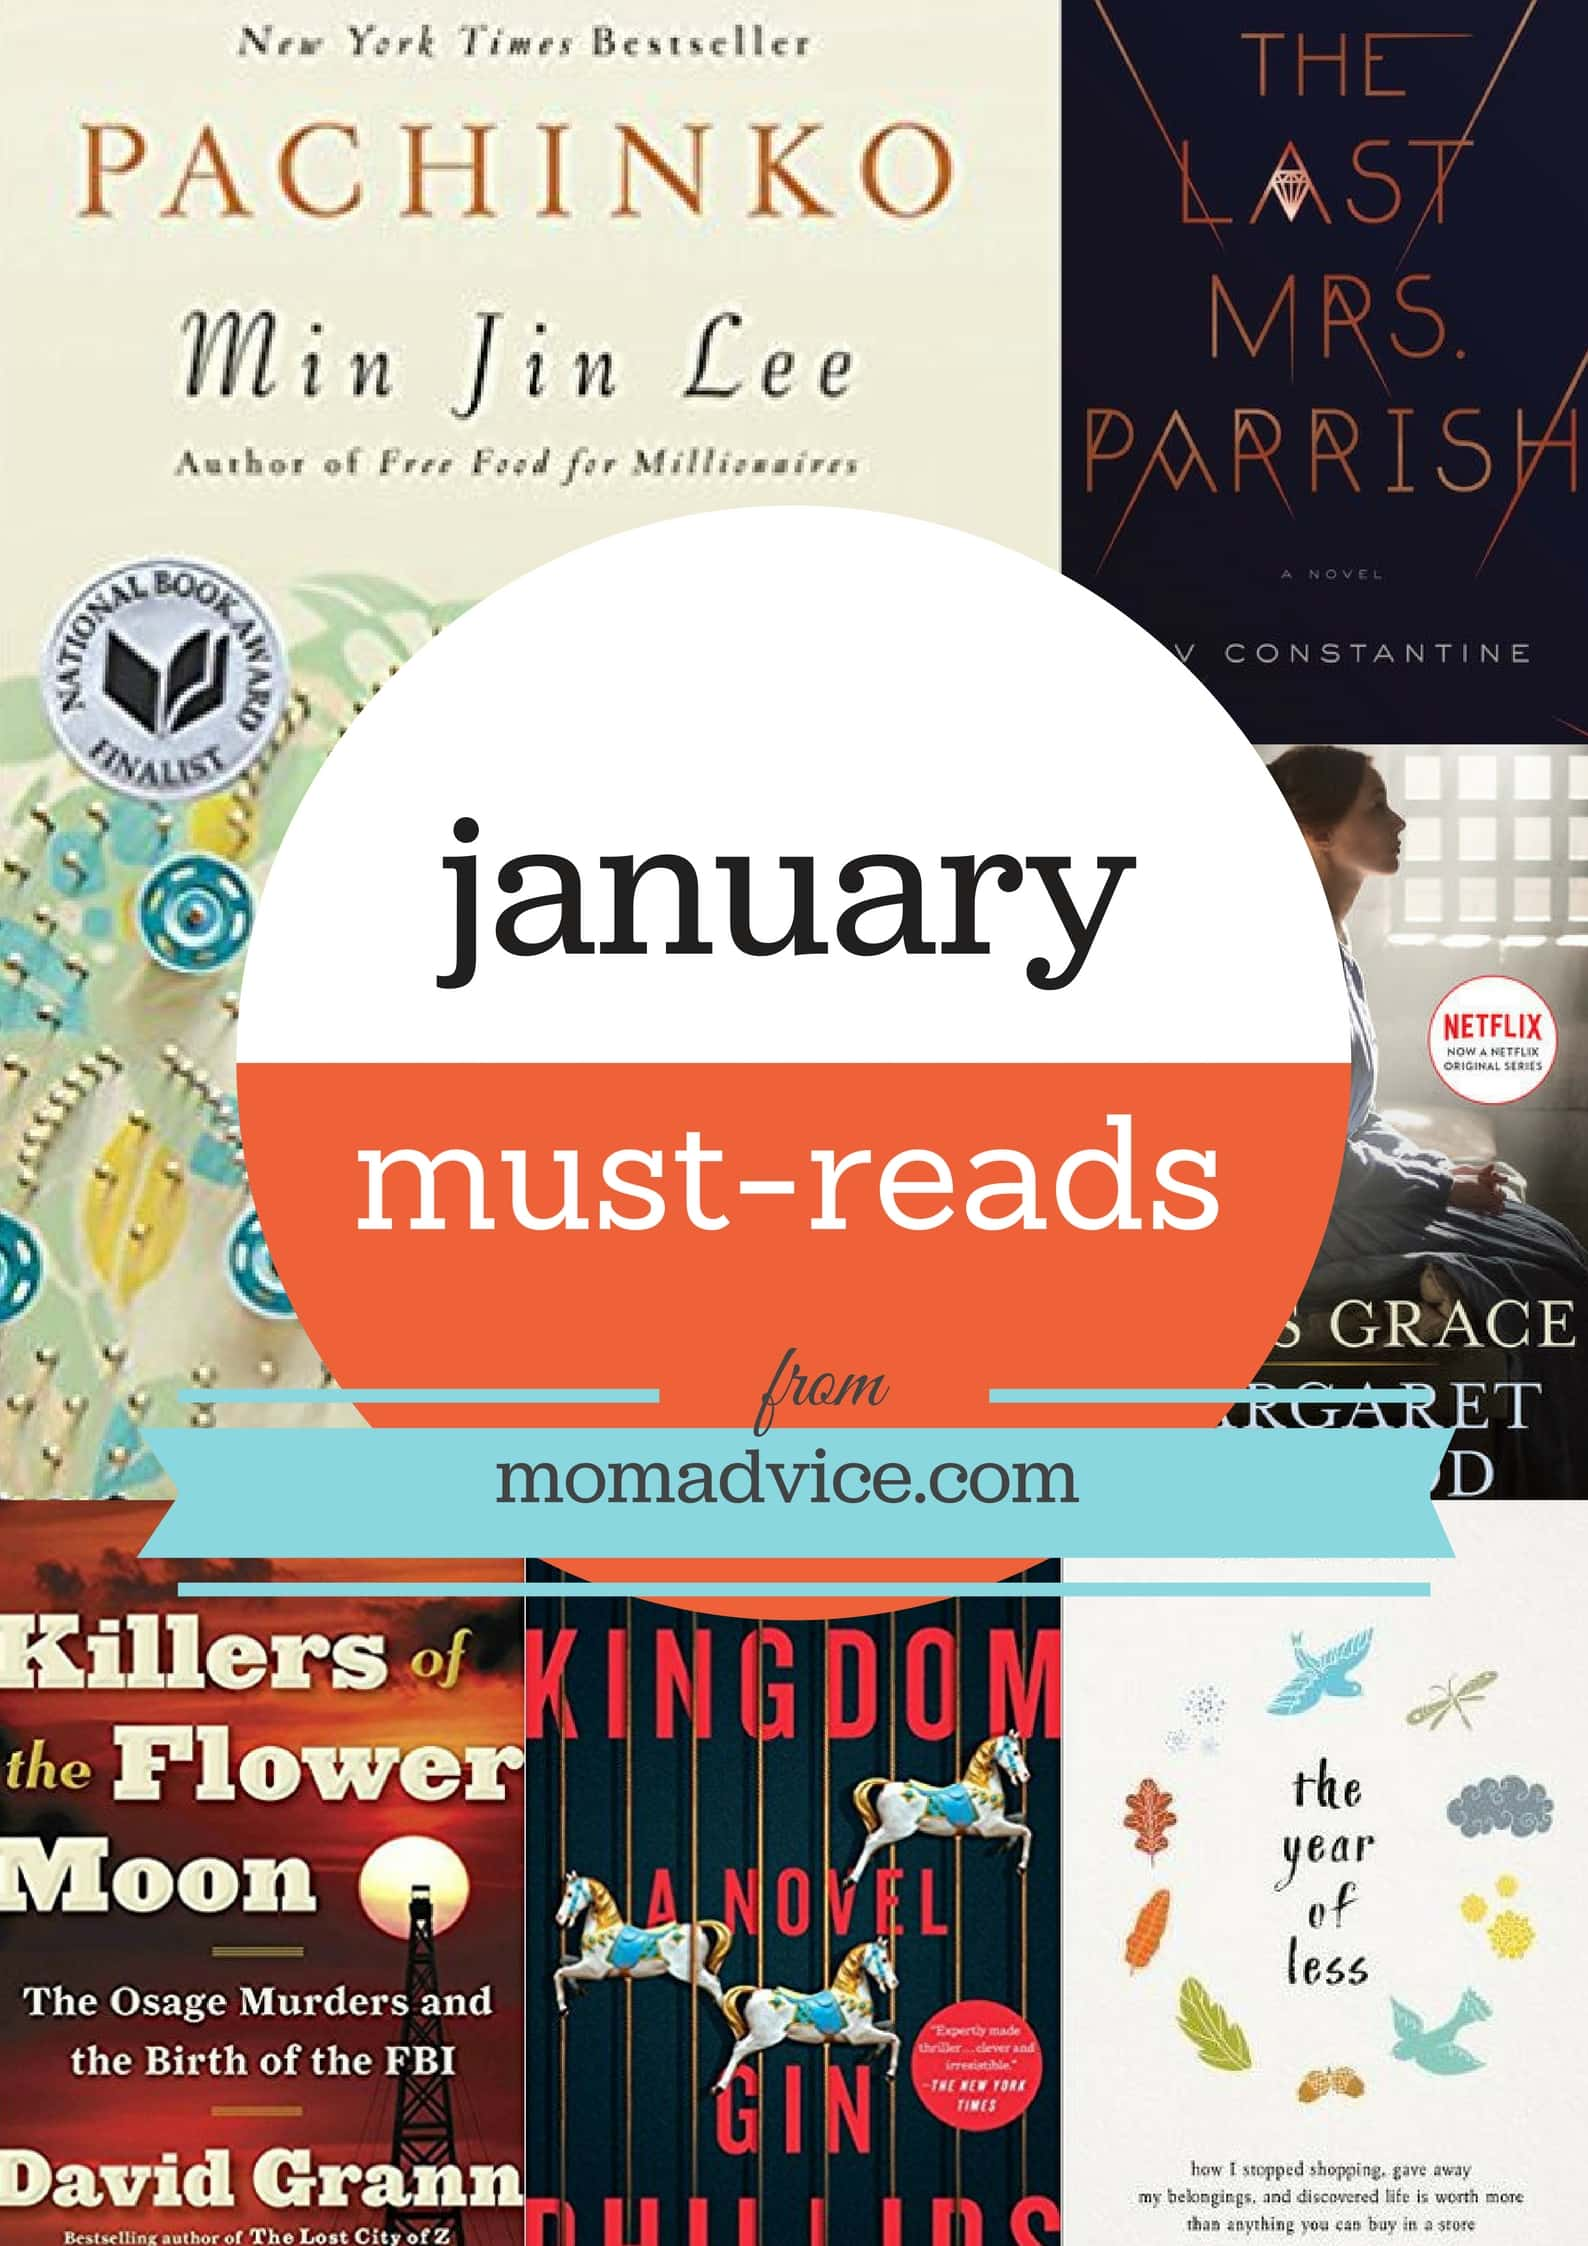 January 2018 Must-Reads from MomAdvice.com